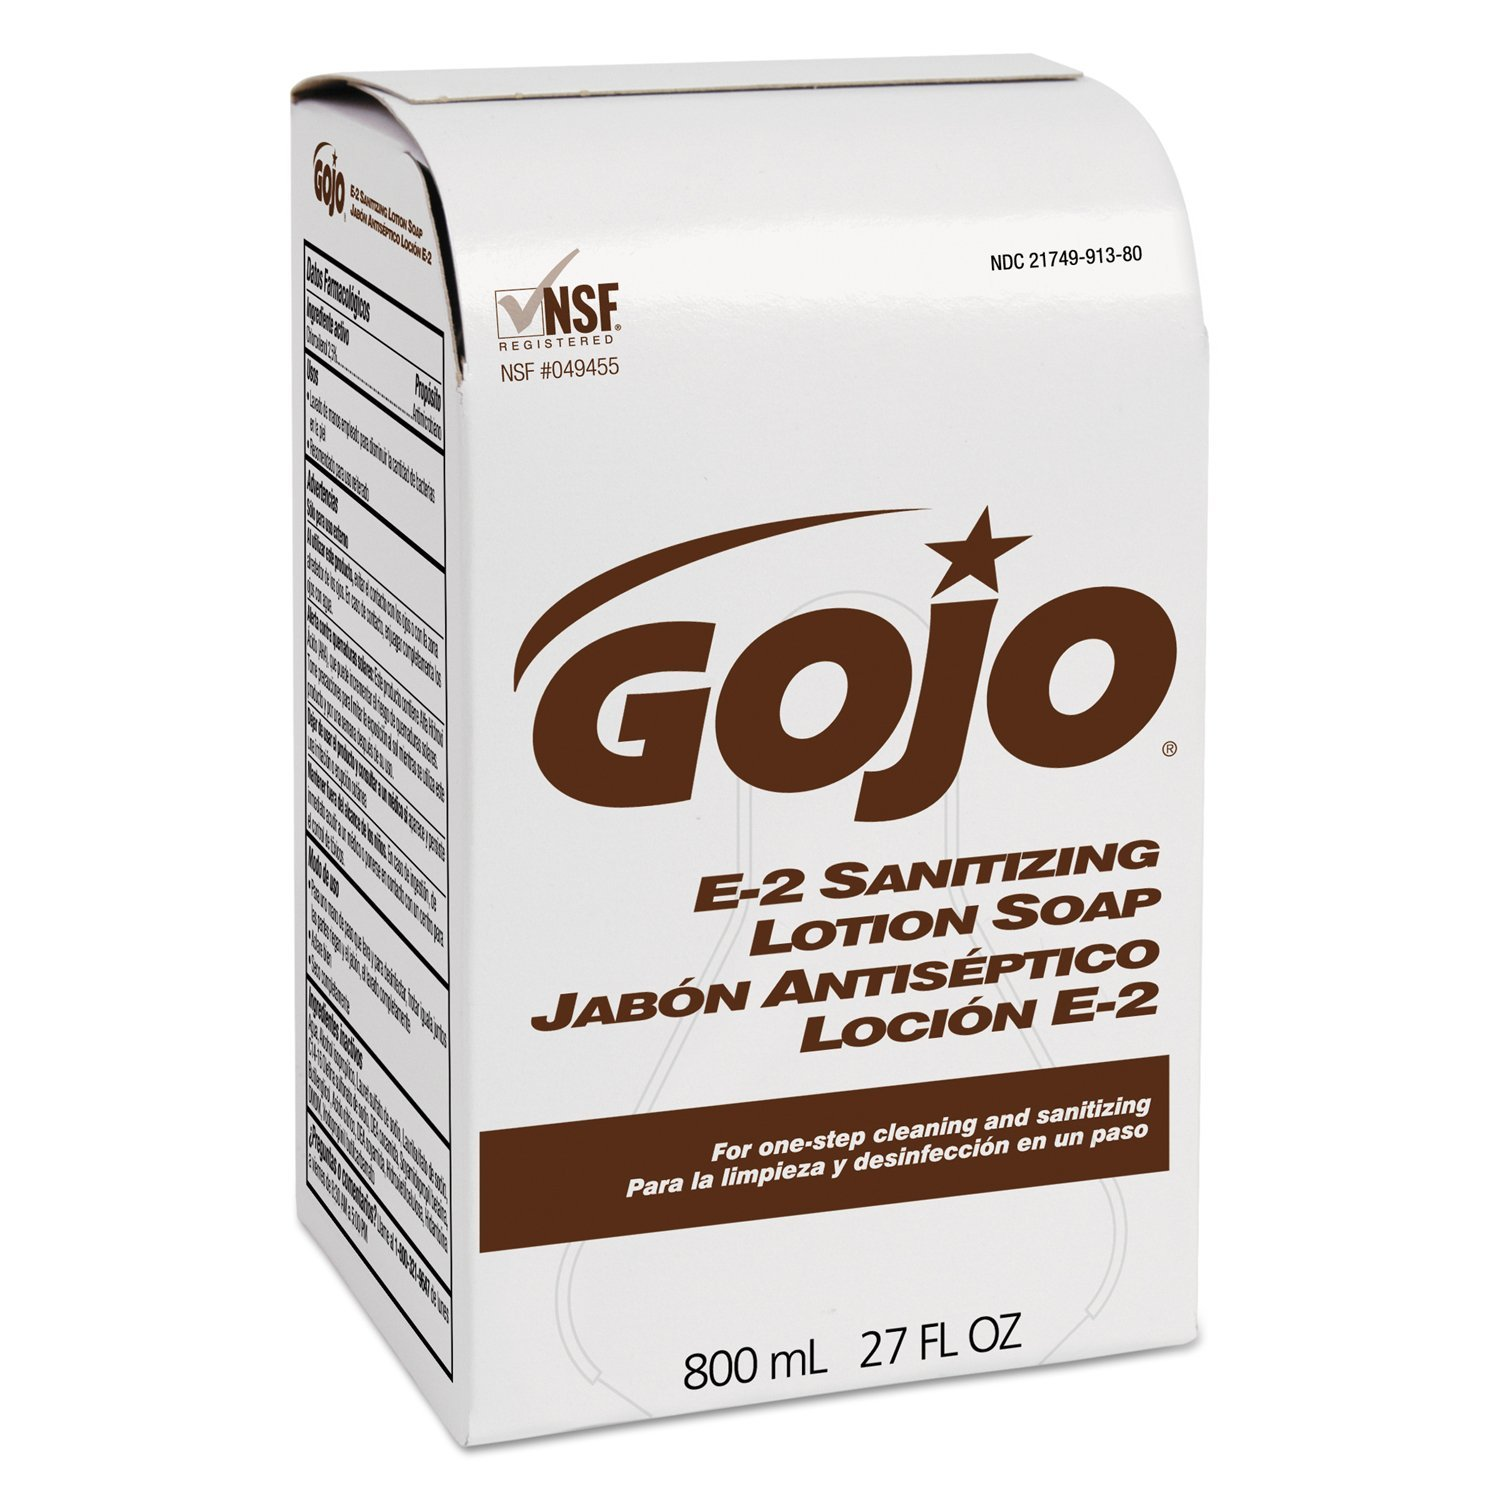 GOJO GOJ 9132 Food Industry Sanitary Soap, Amber, Fragrance Free, 800 mL (Pack of 12)